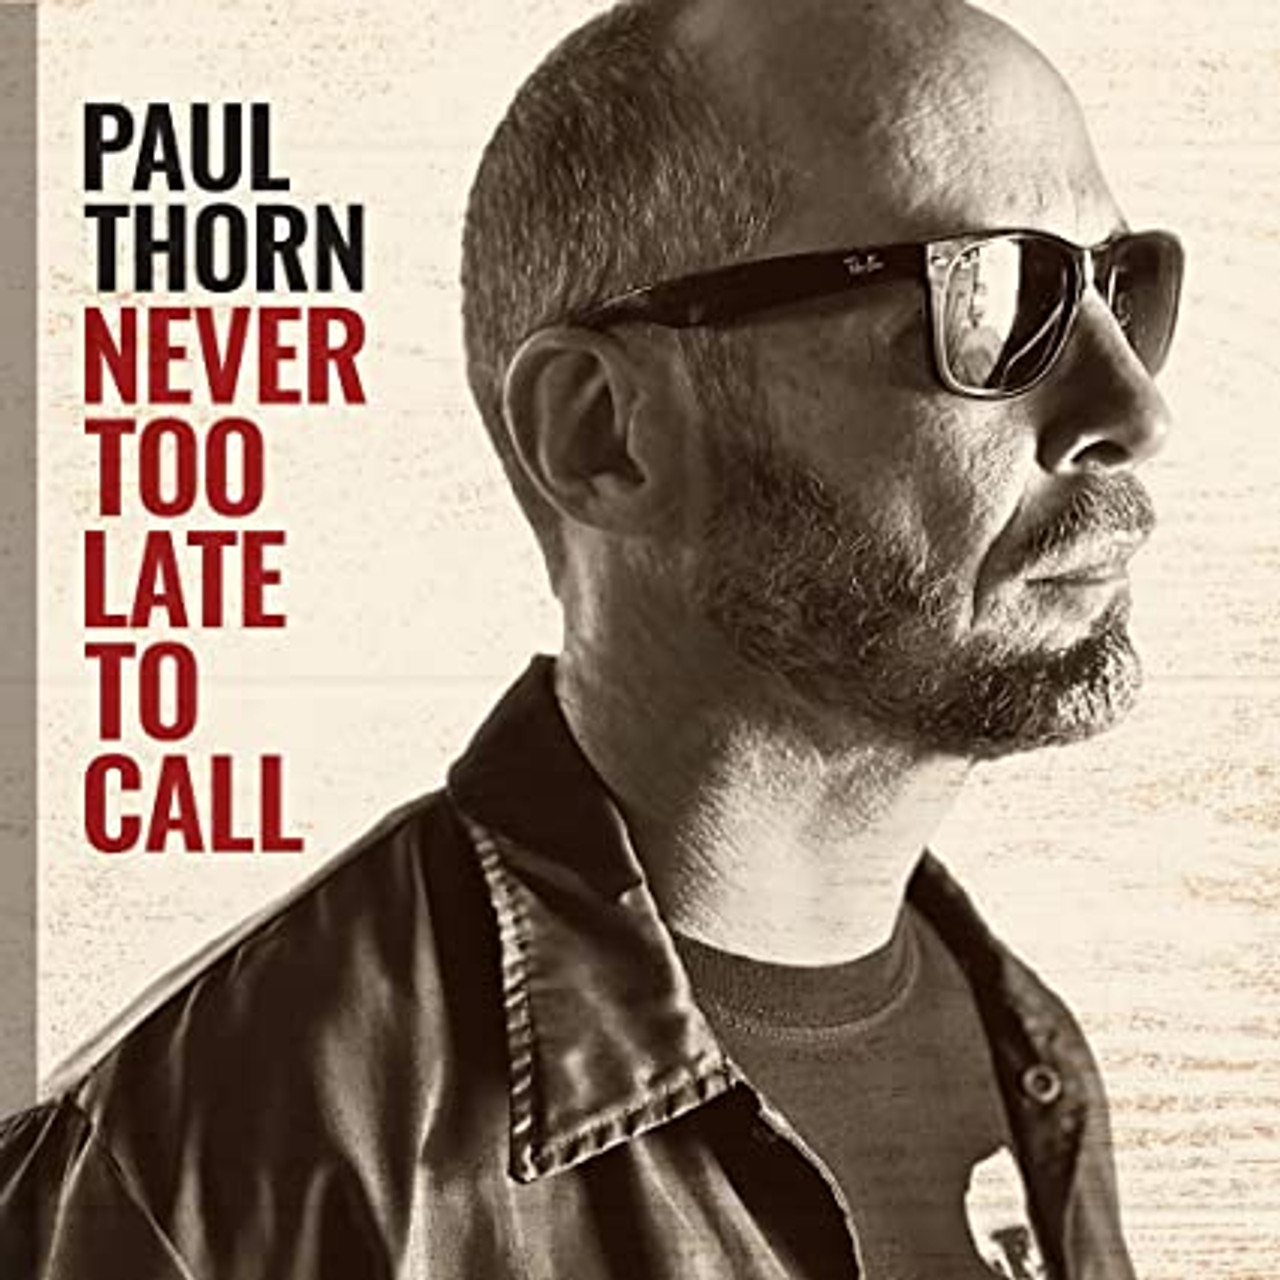 PAUL THORN - NEVER TO LATE TO CALL